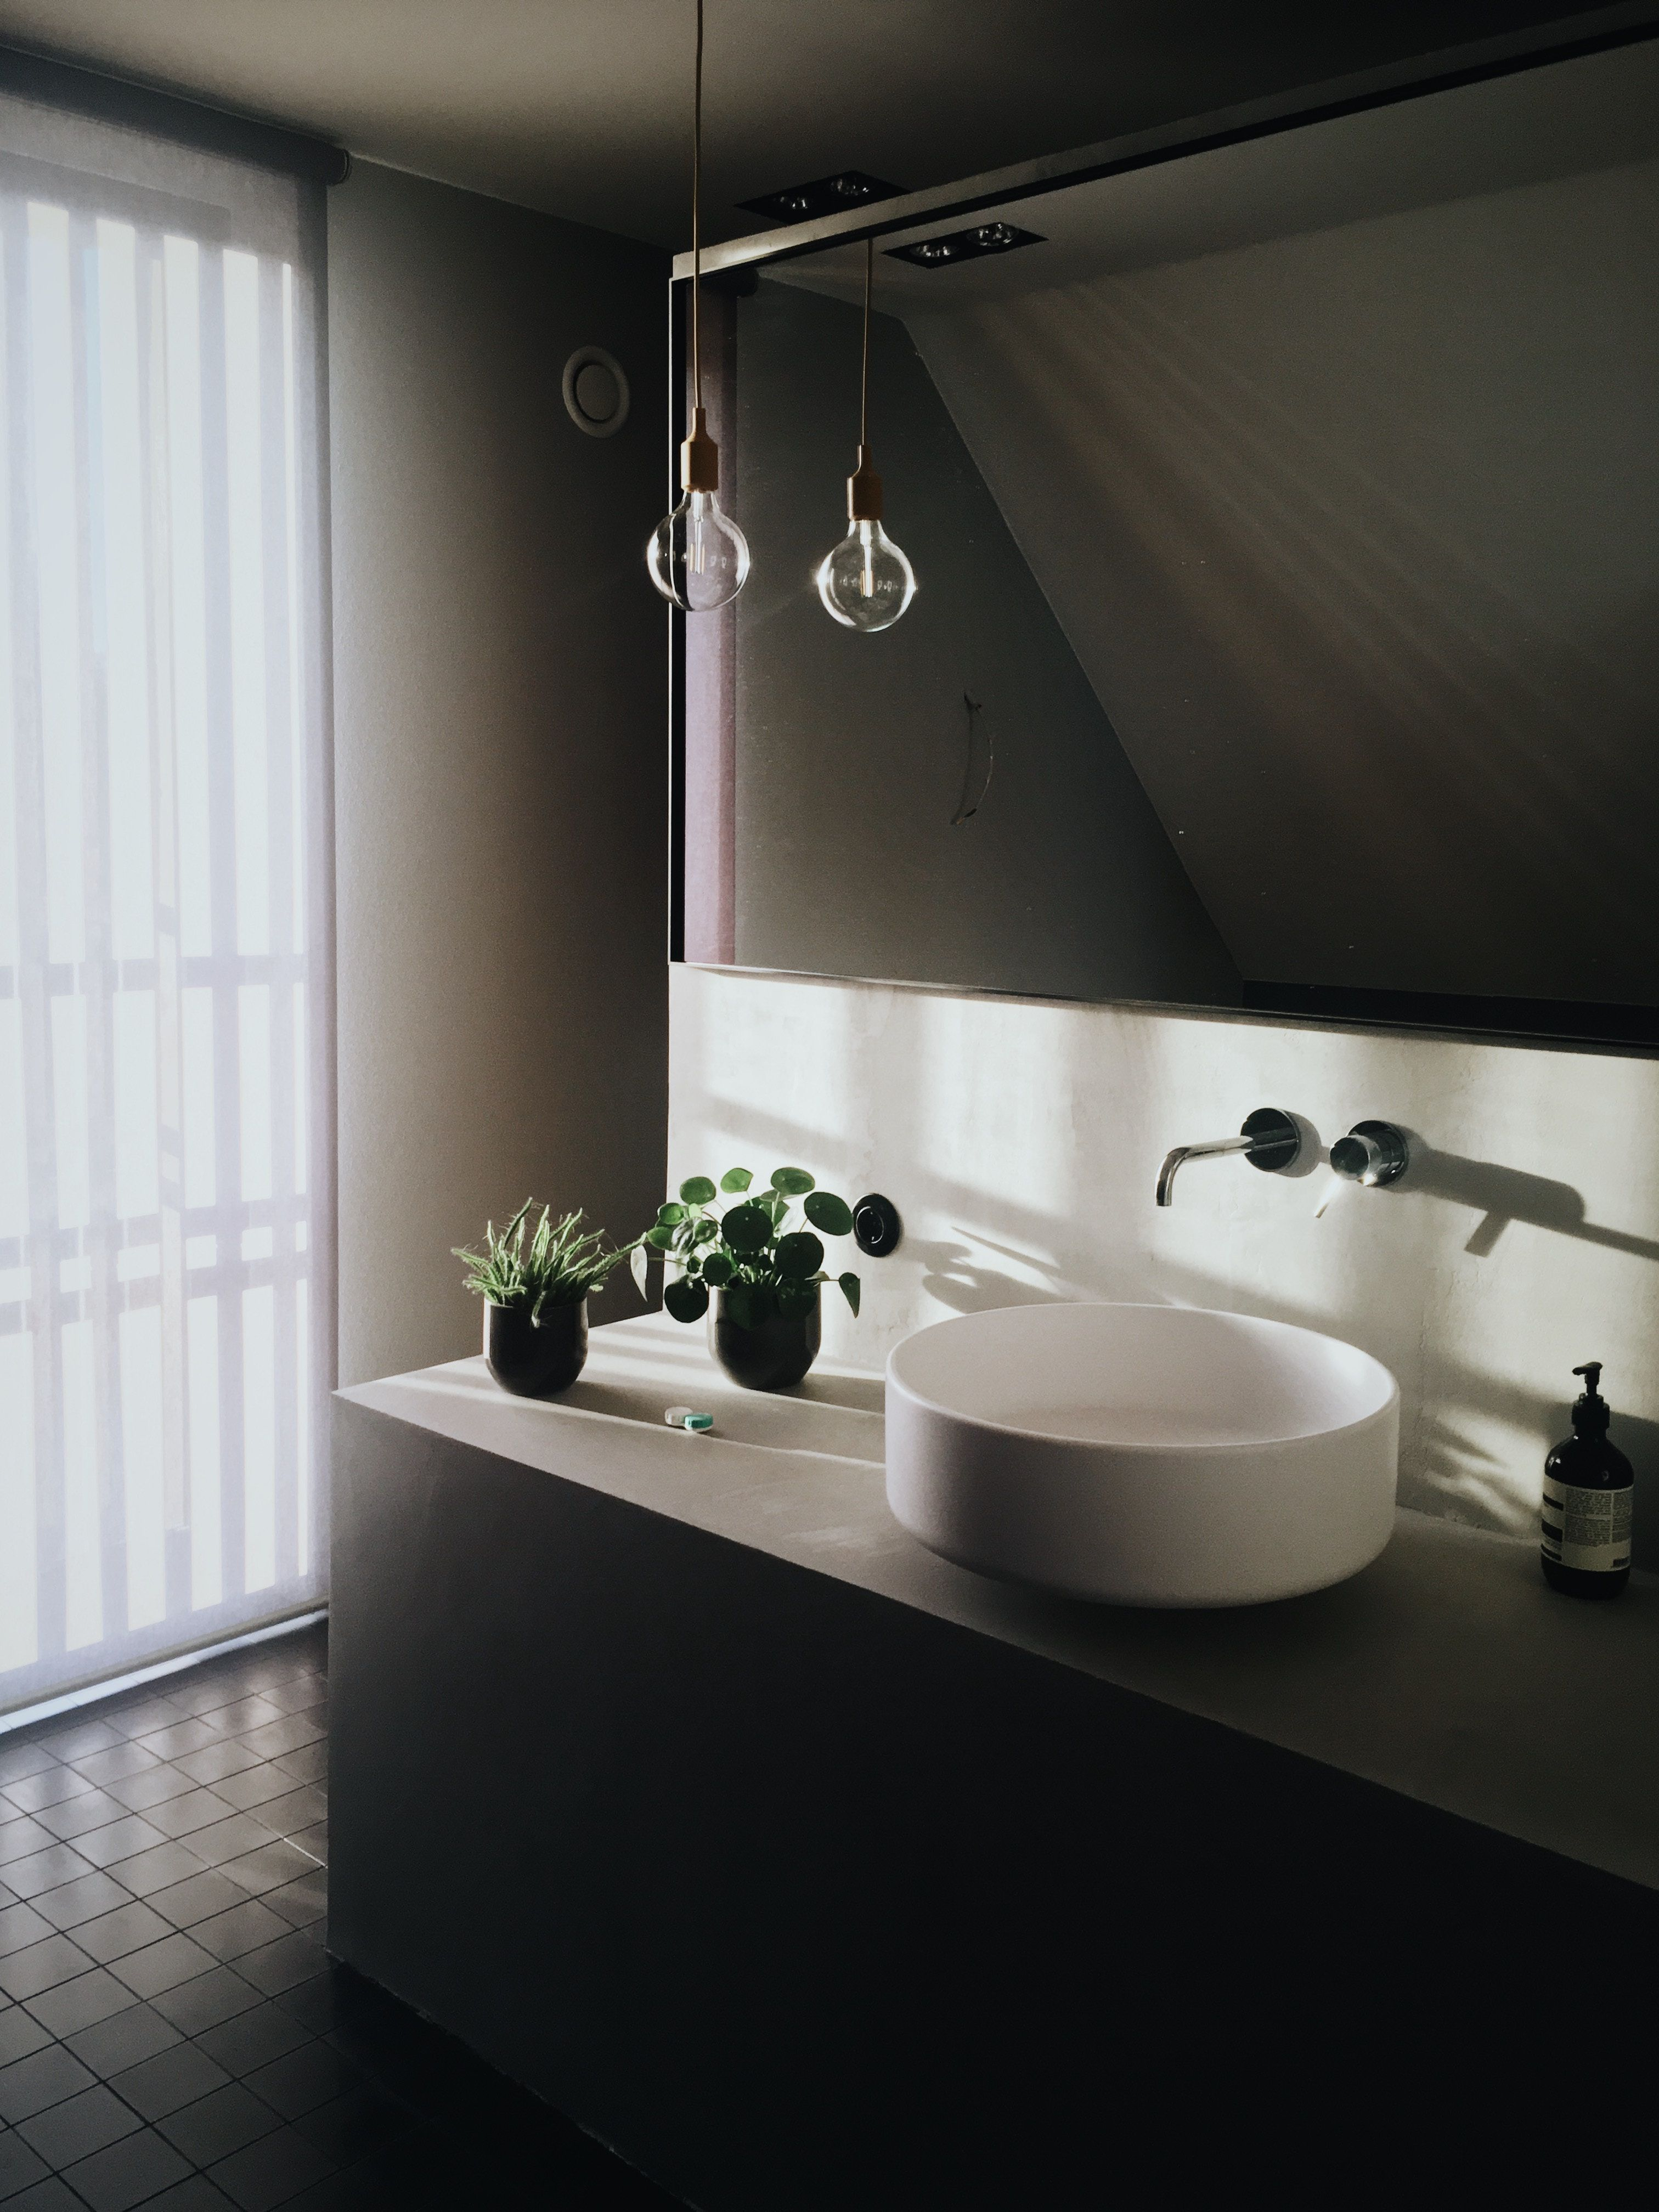 Best Ways To Conserve Water At Home This Weekend House Method Amazing Bathrooms Luxury Bathroom Bathroom Layout